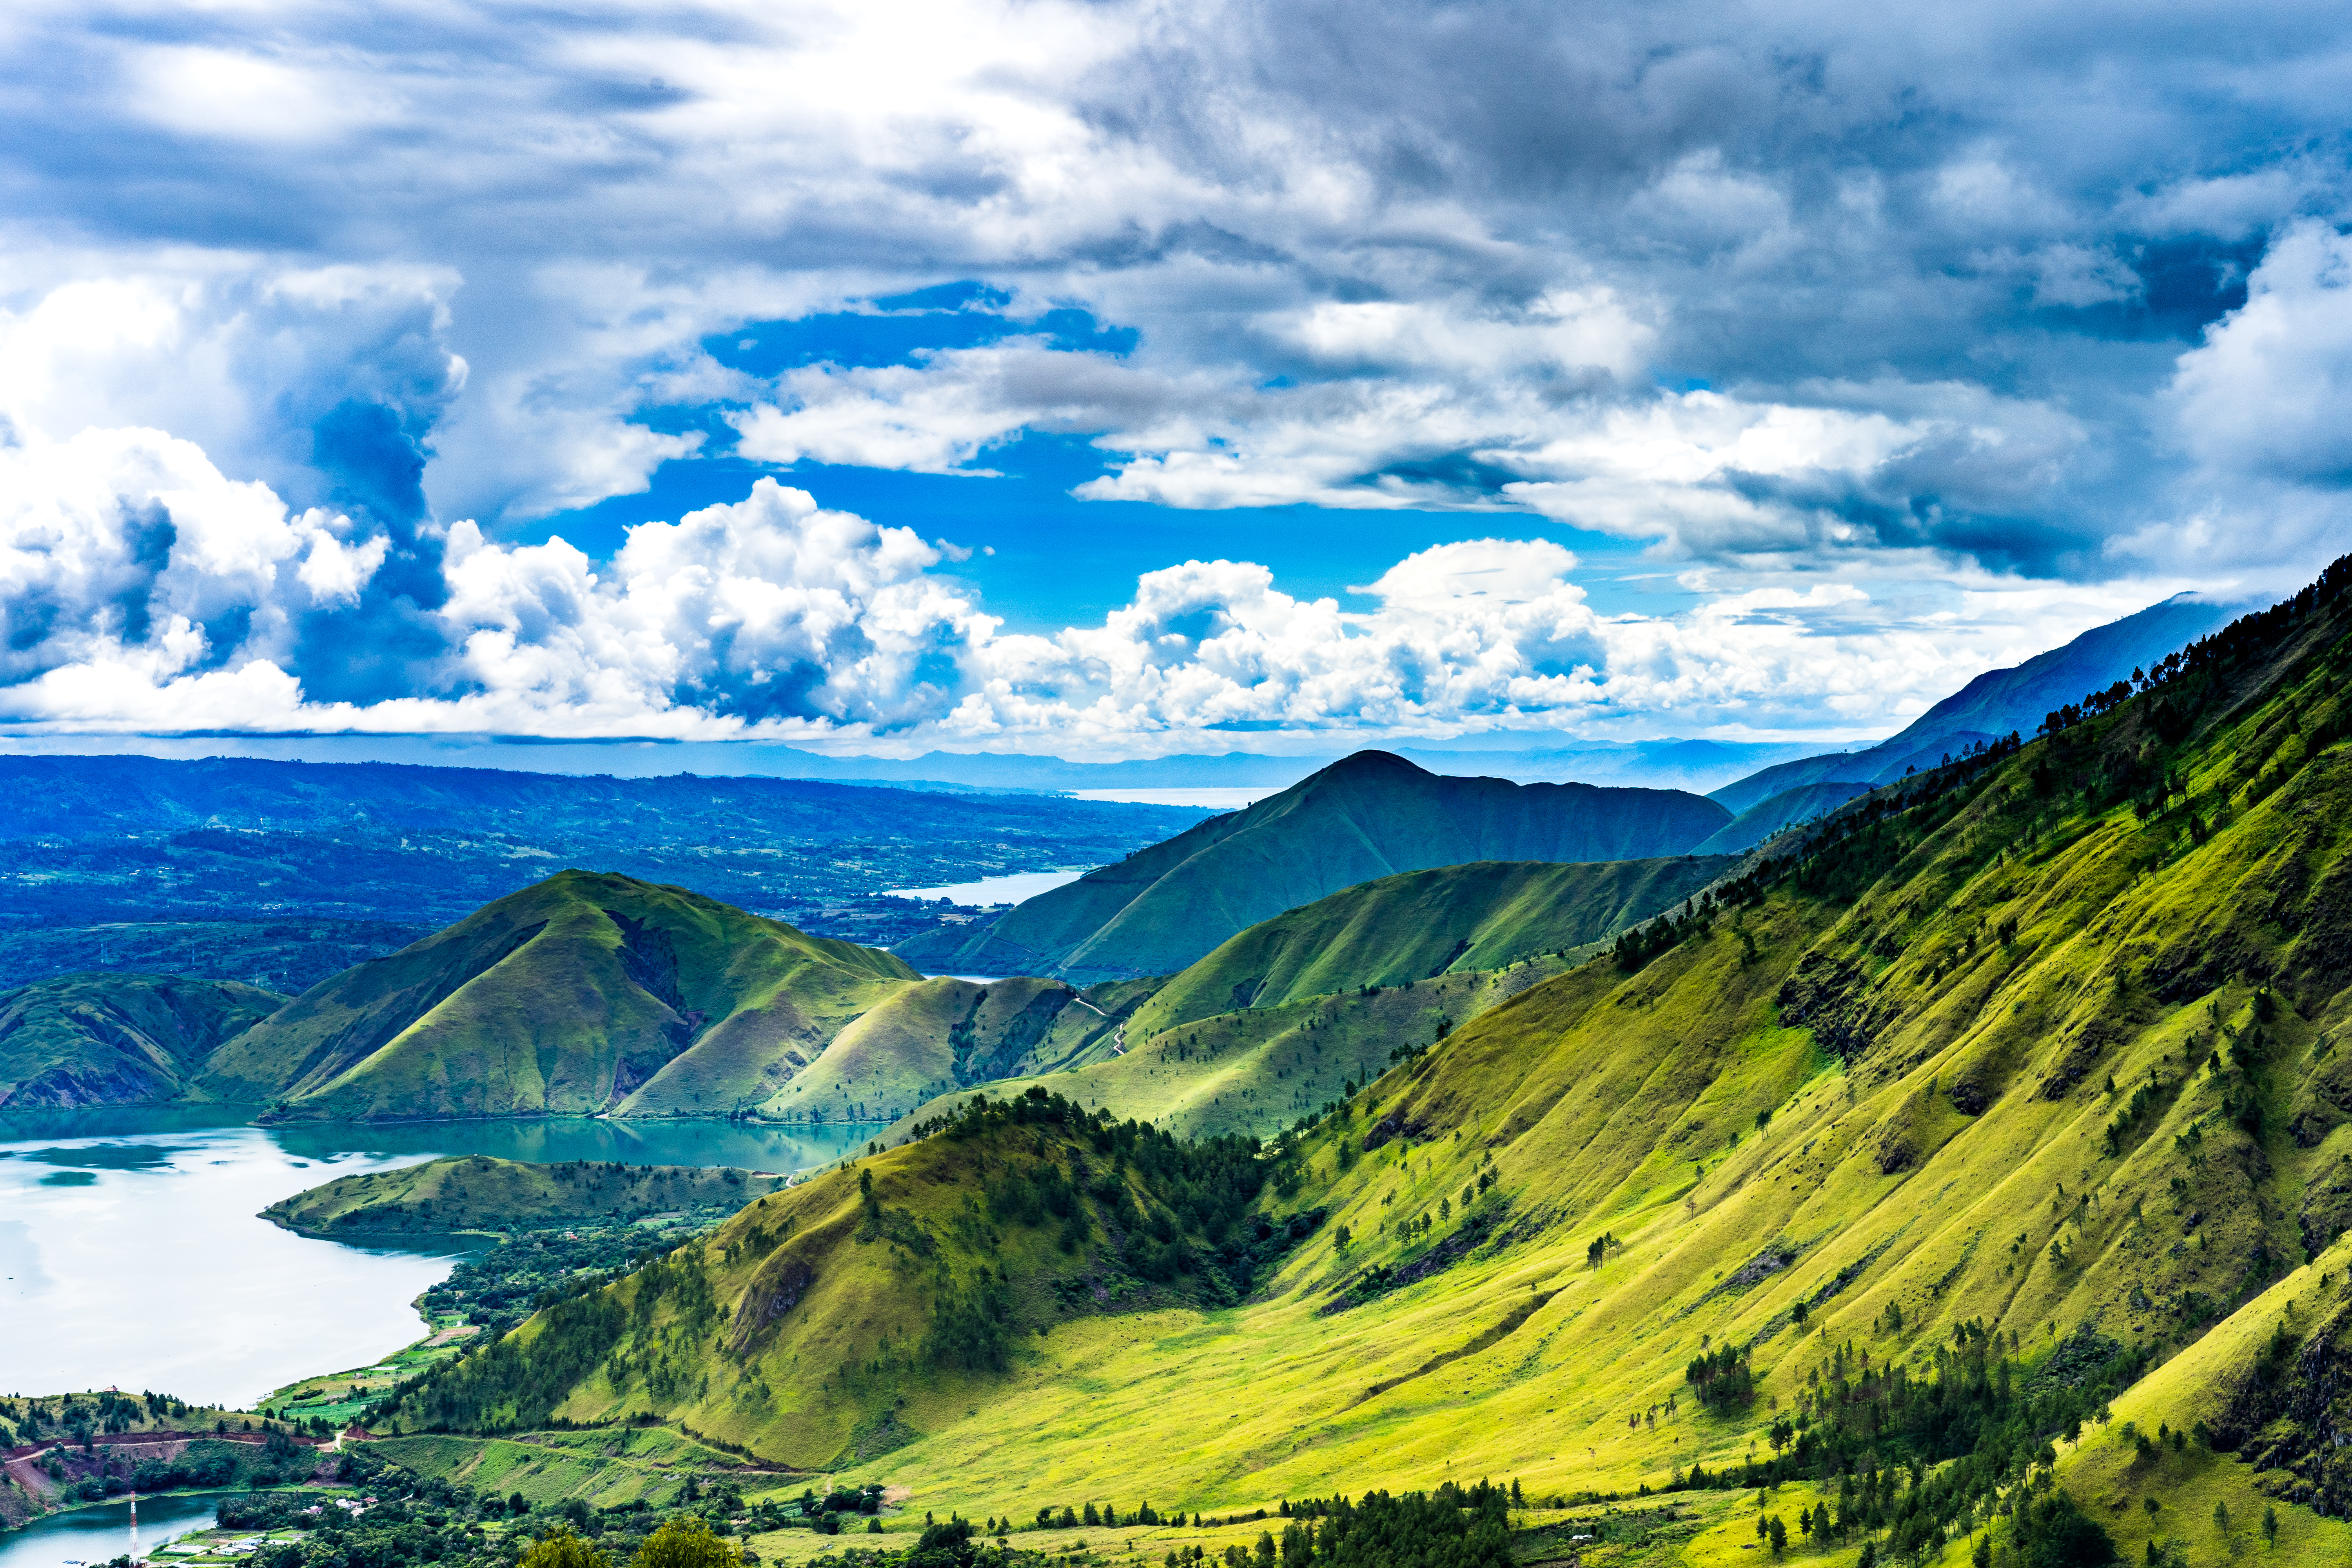 bright blue and green hills of Sumatra island